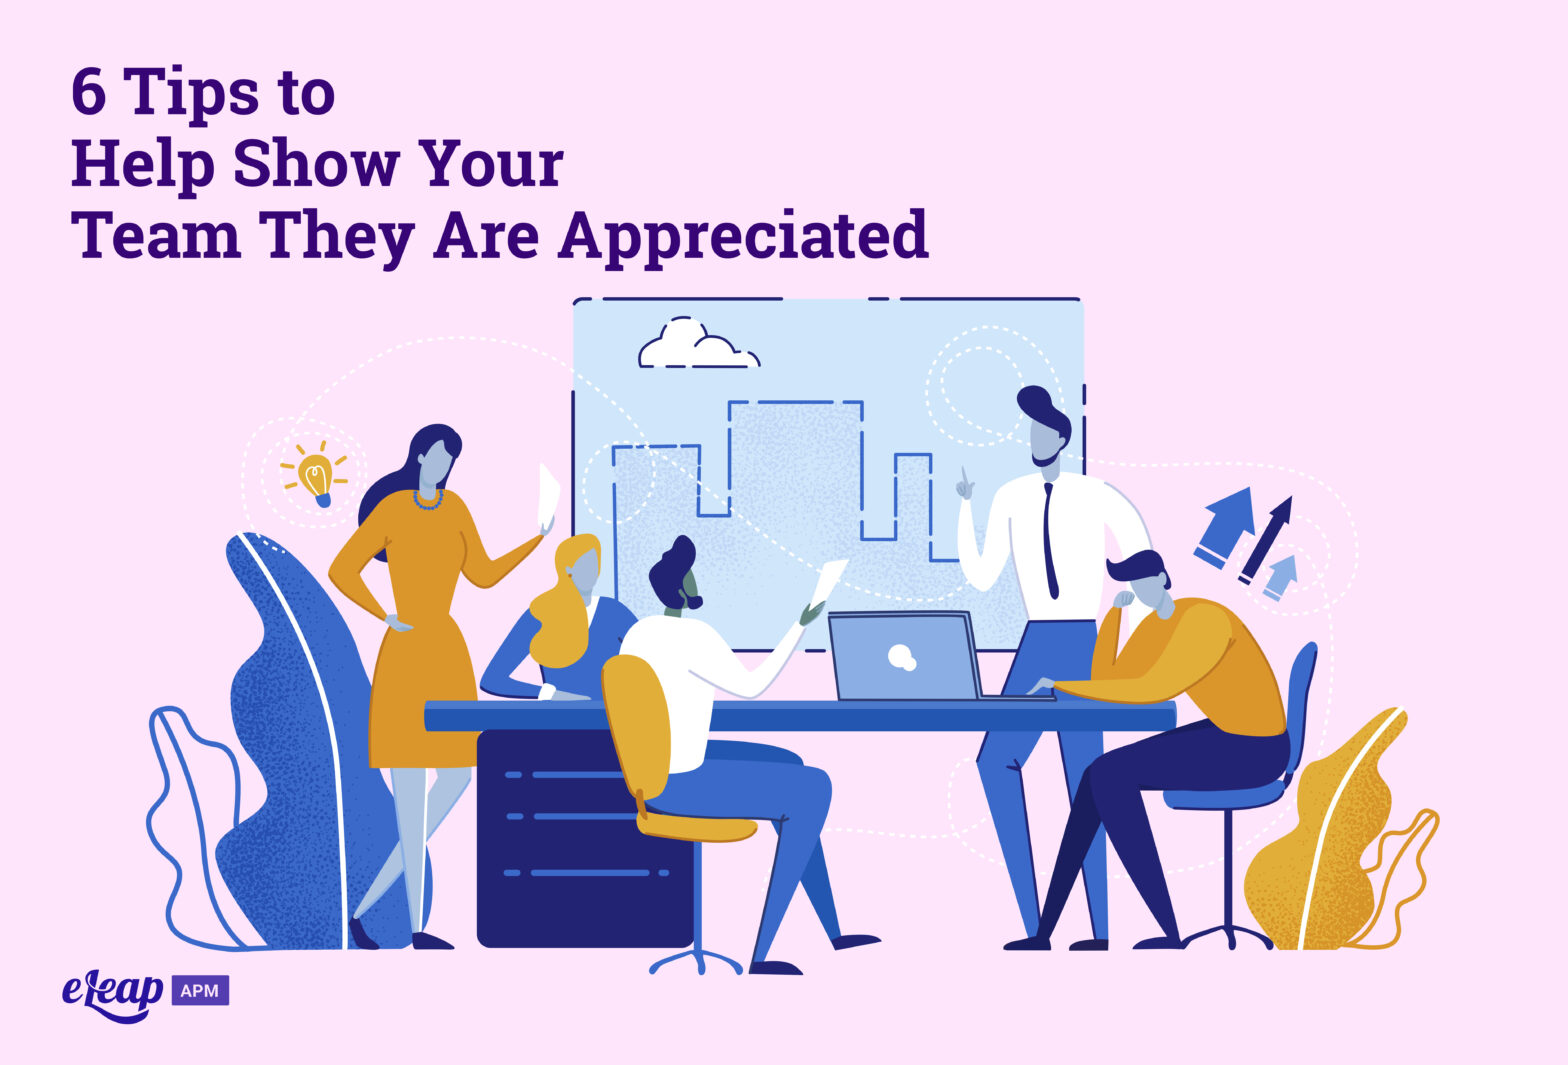 6 Tips to Help Show Your Team They Are Appreciated